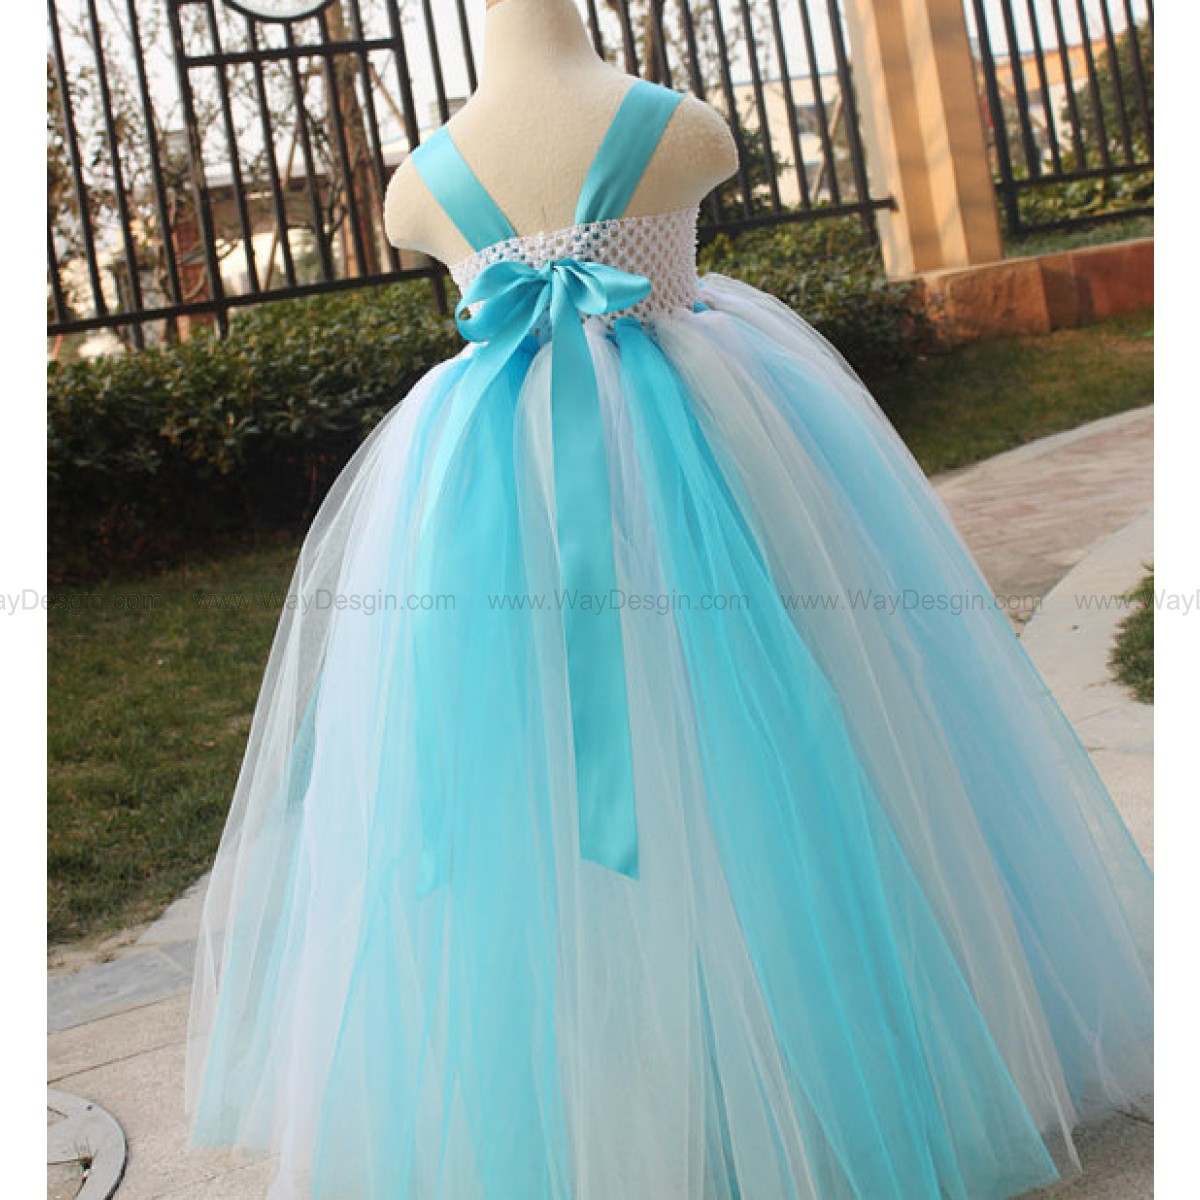 Flower Girl Dress Turquoise Grey white tutu dress baby dress toddler ...